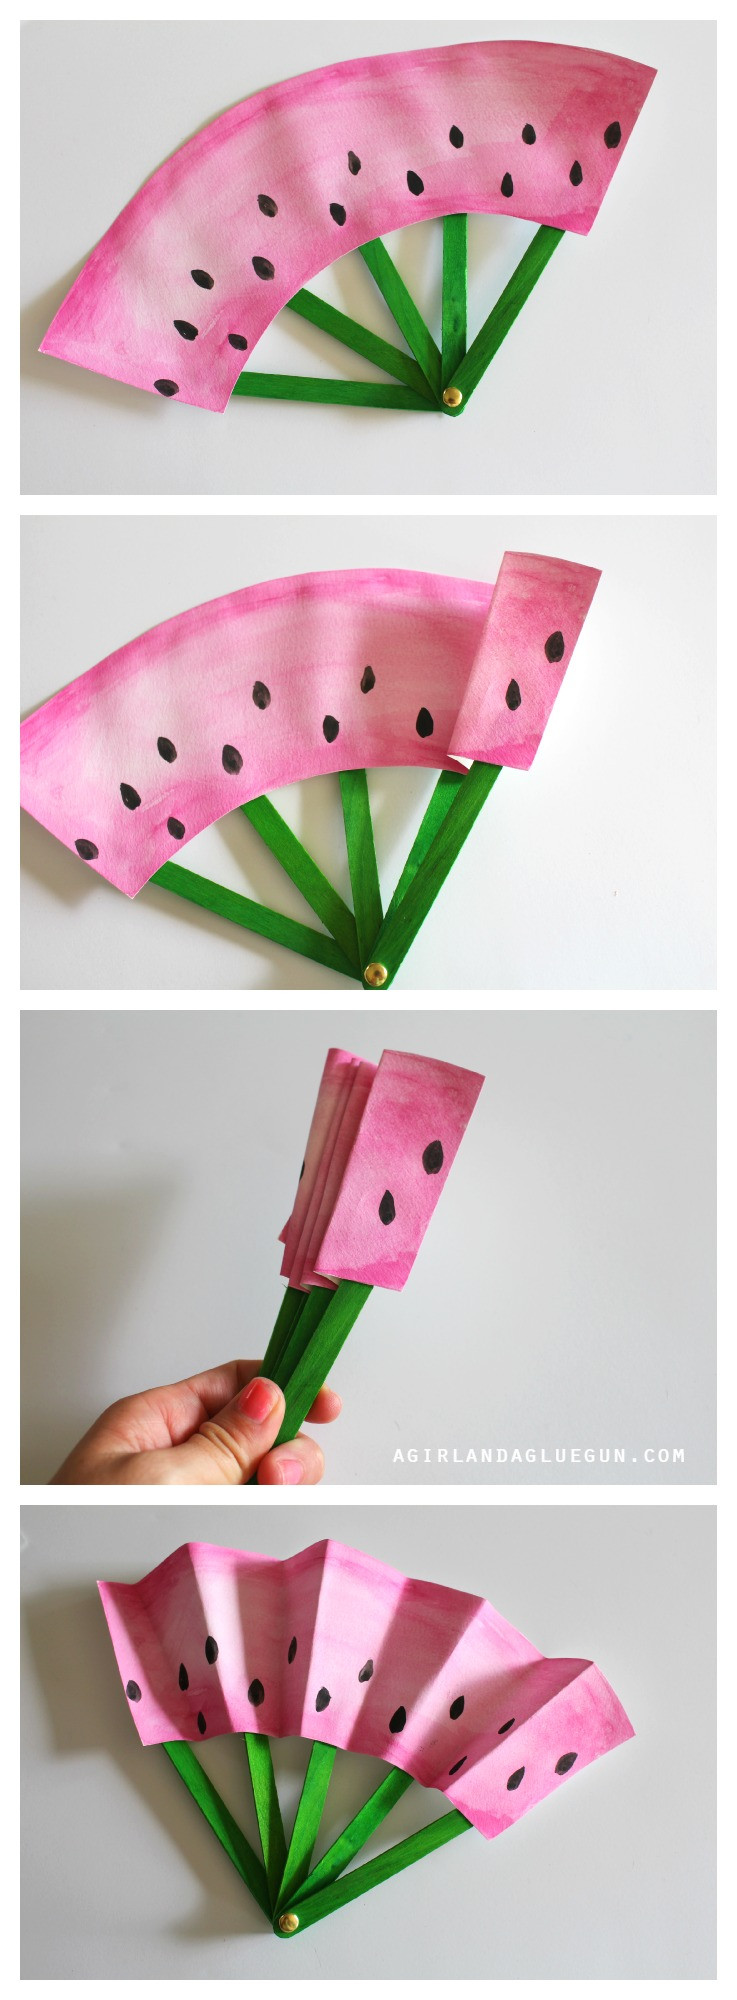 Best ideas about Easy Arts And Crafts For Toddlers . Save or Pin DIY Fruit Fans Kids Craft The Idea Room Now.